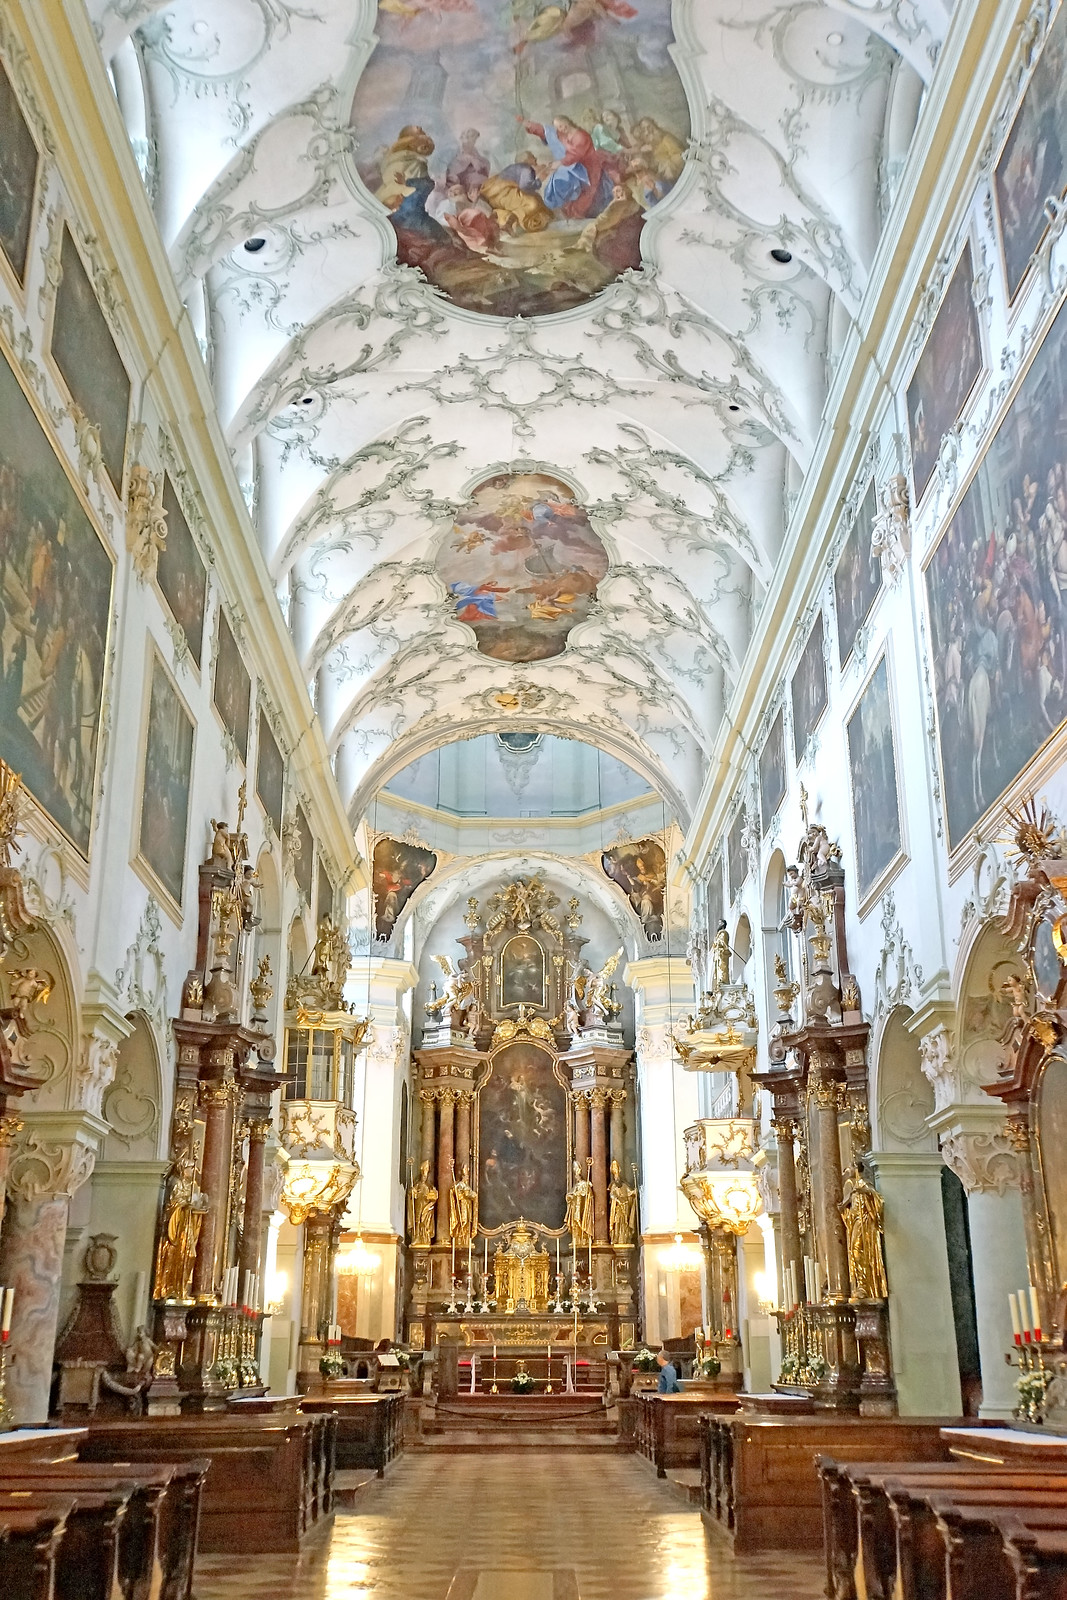 Interior design of St. Peters Abbey- One of the spectacular attractions in Salzburg